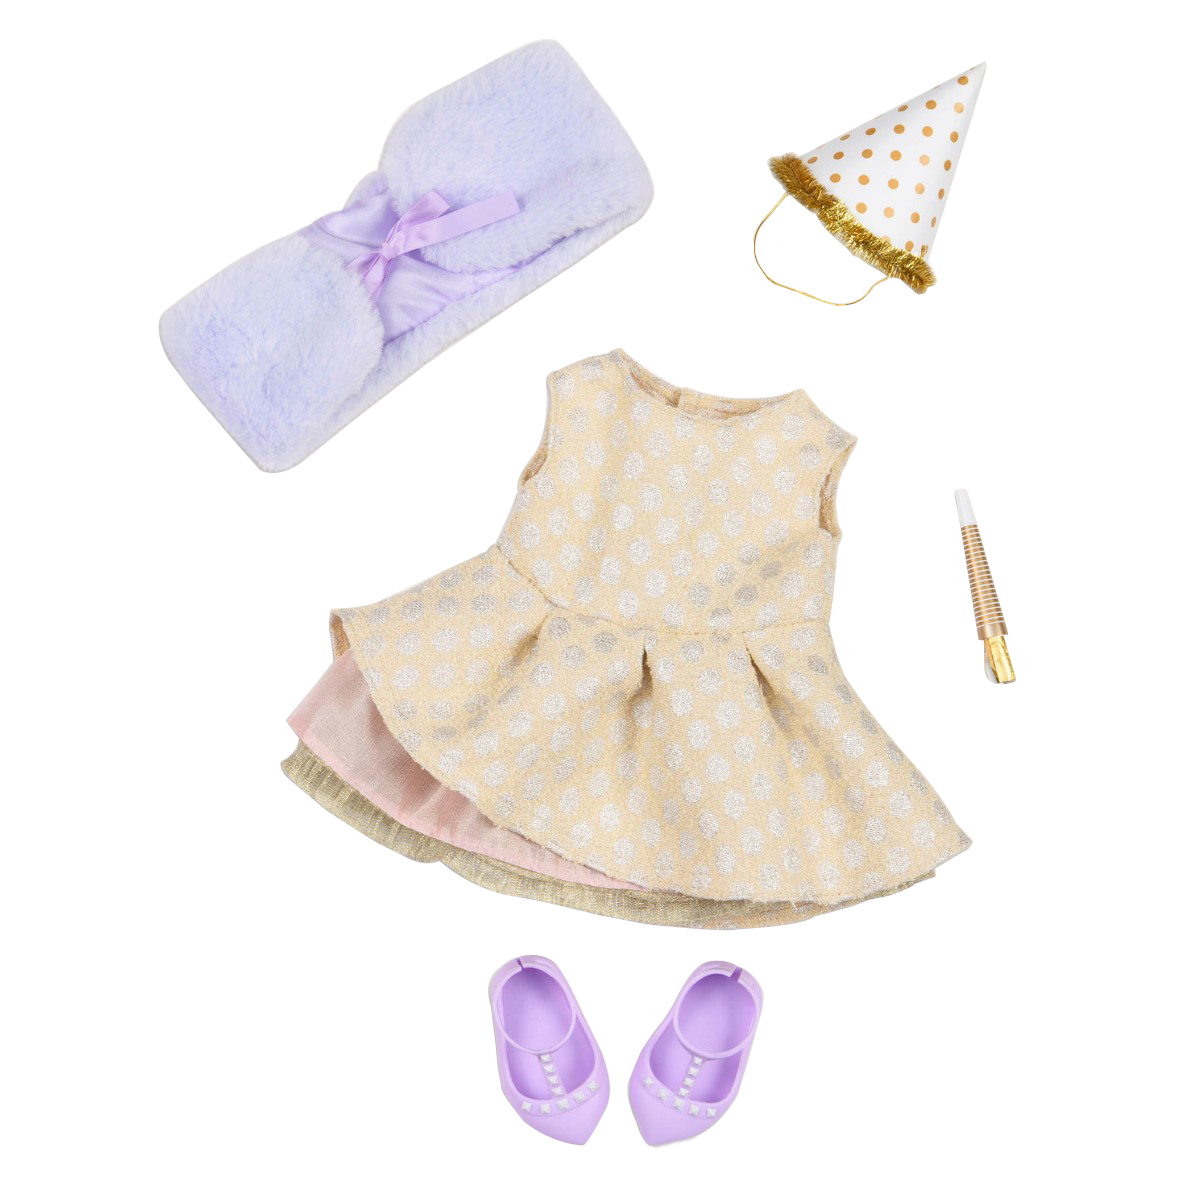 Our Generation - Deluxe Outfit - New Years Dress (730270)